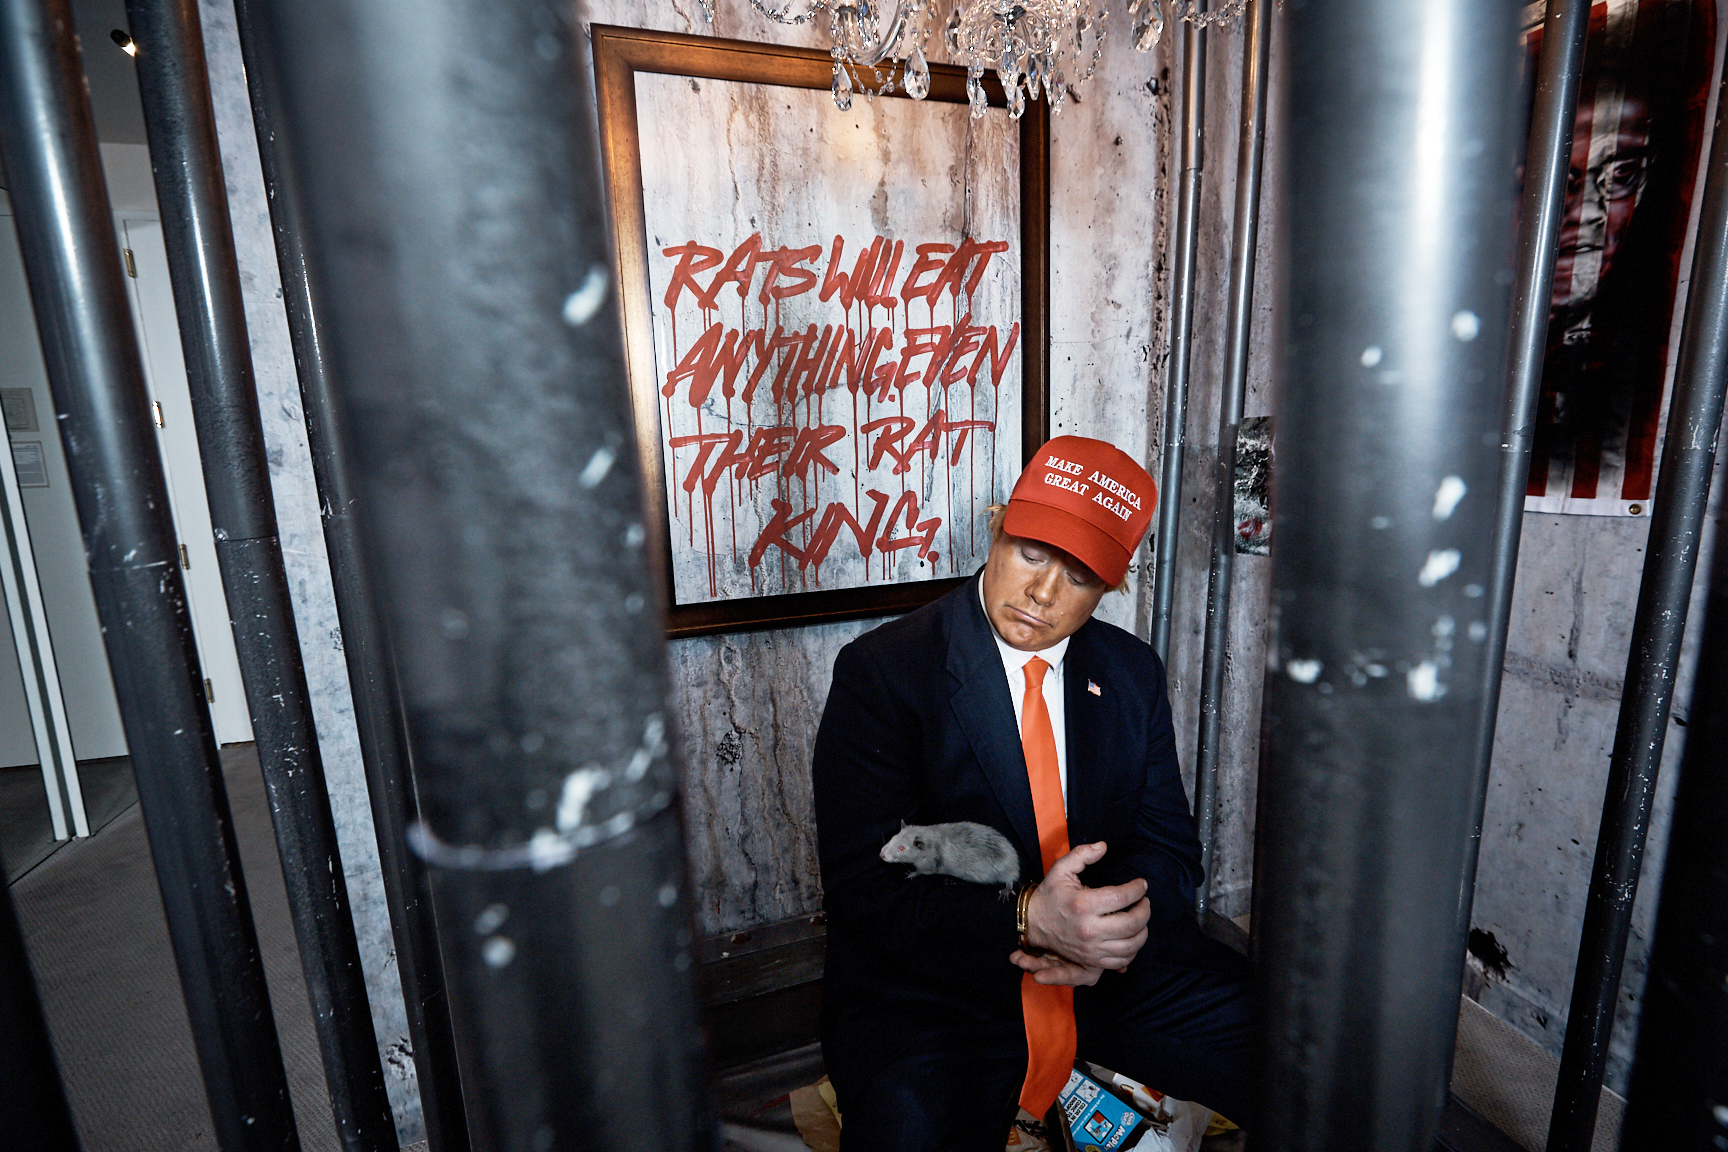 How a New Anti-Trump Art Installation Made Its Way to a Trump Hotel